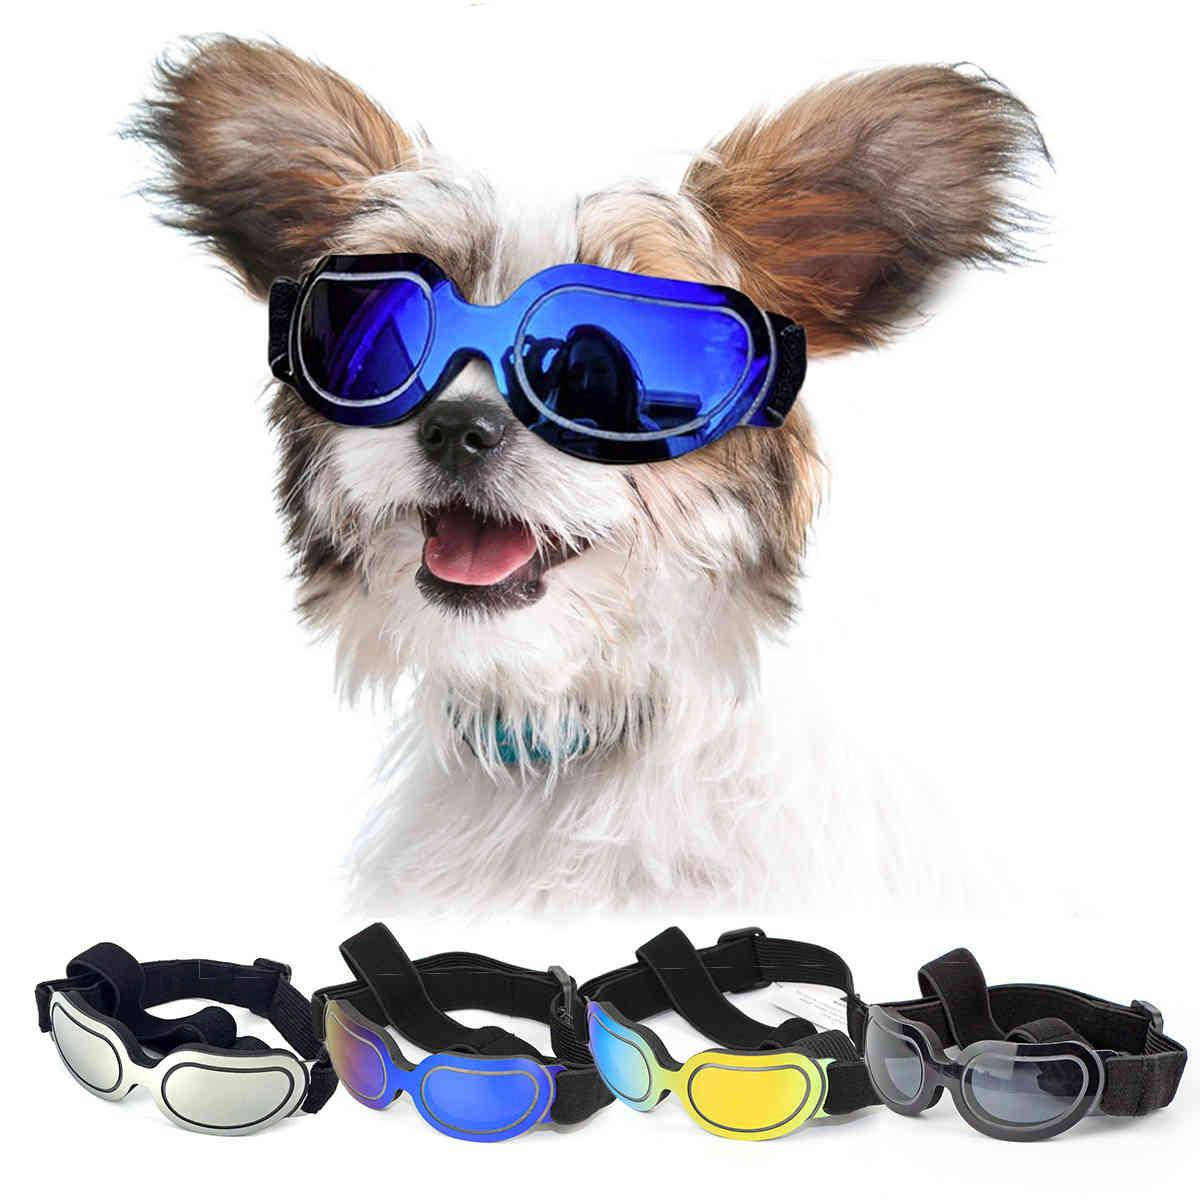 Pet Dog Sunglasses Adjustable Goggles For Small Medium Large Dogs Cats Puppy Sun Glasses Dog Outdoor Glasses Pet Toy Supply